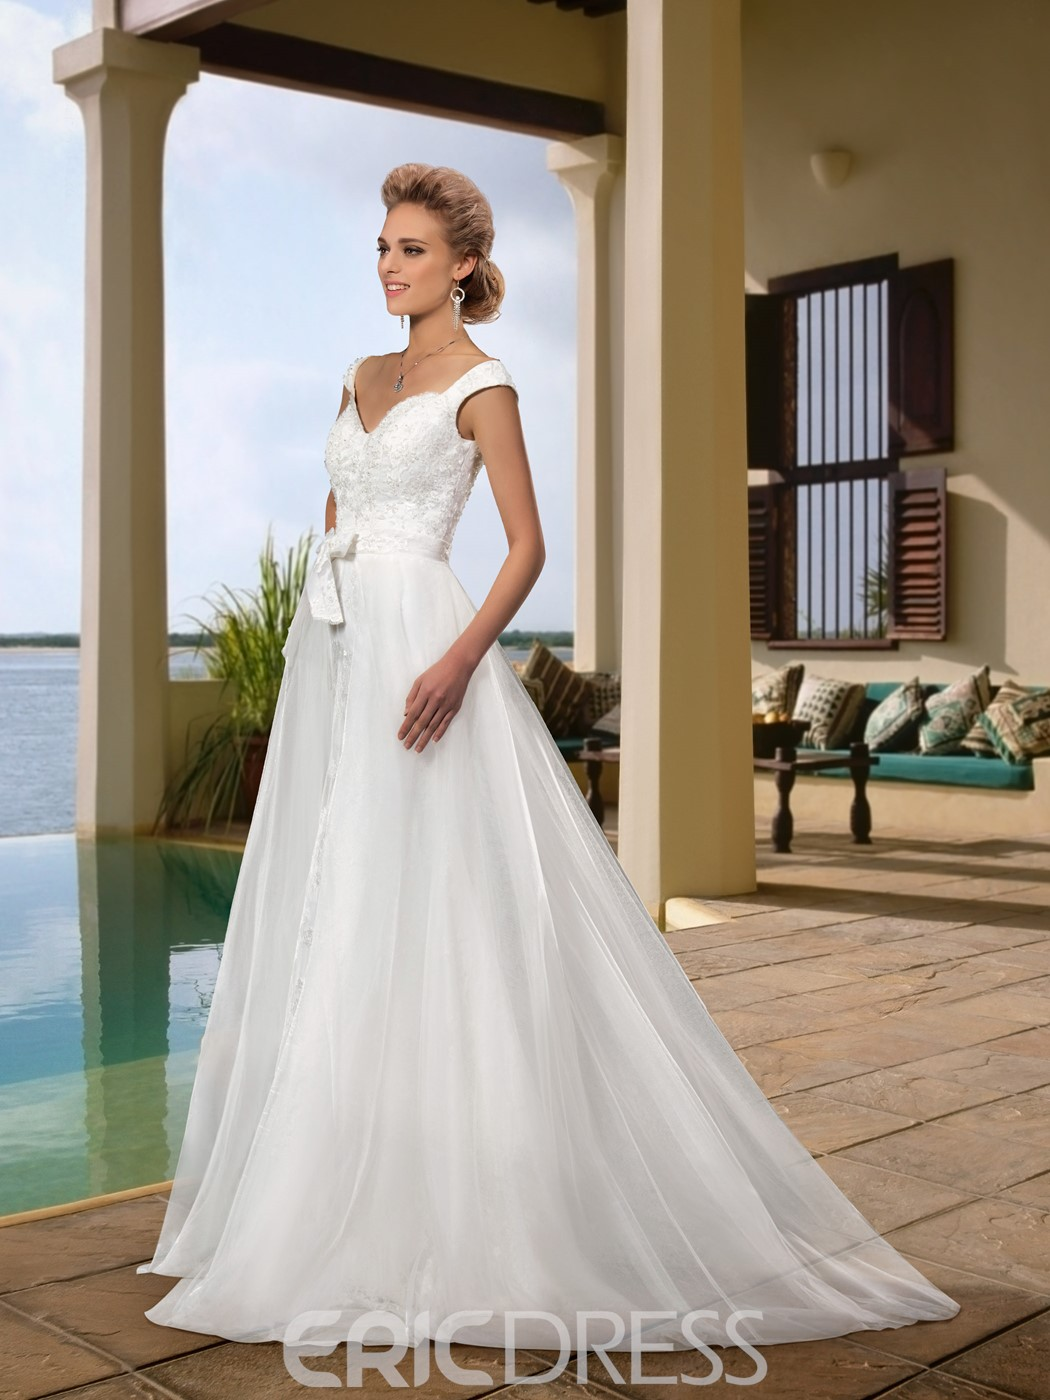 Glamorous A-Line Buwkont Sashes Sweet Train Beading Straps Wedding Dress